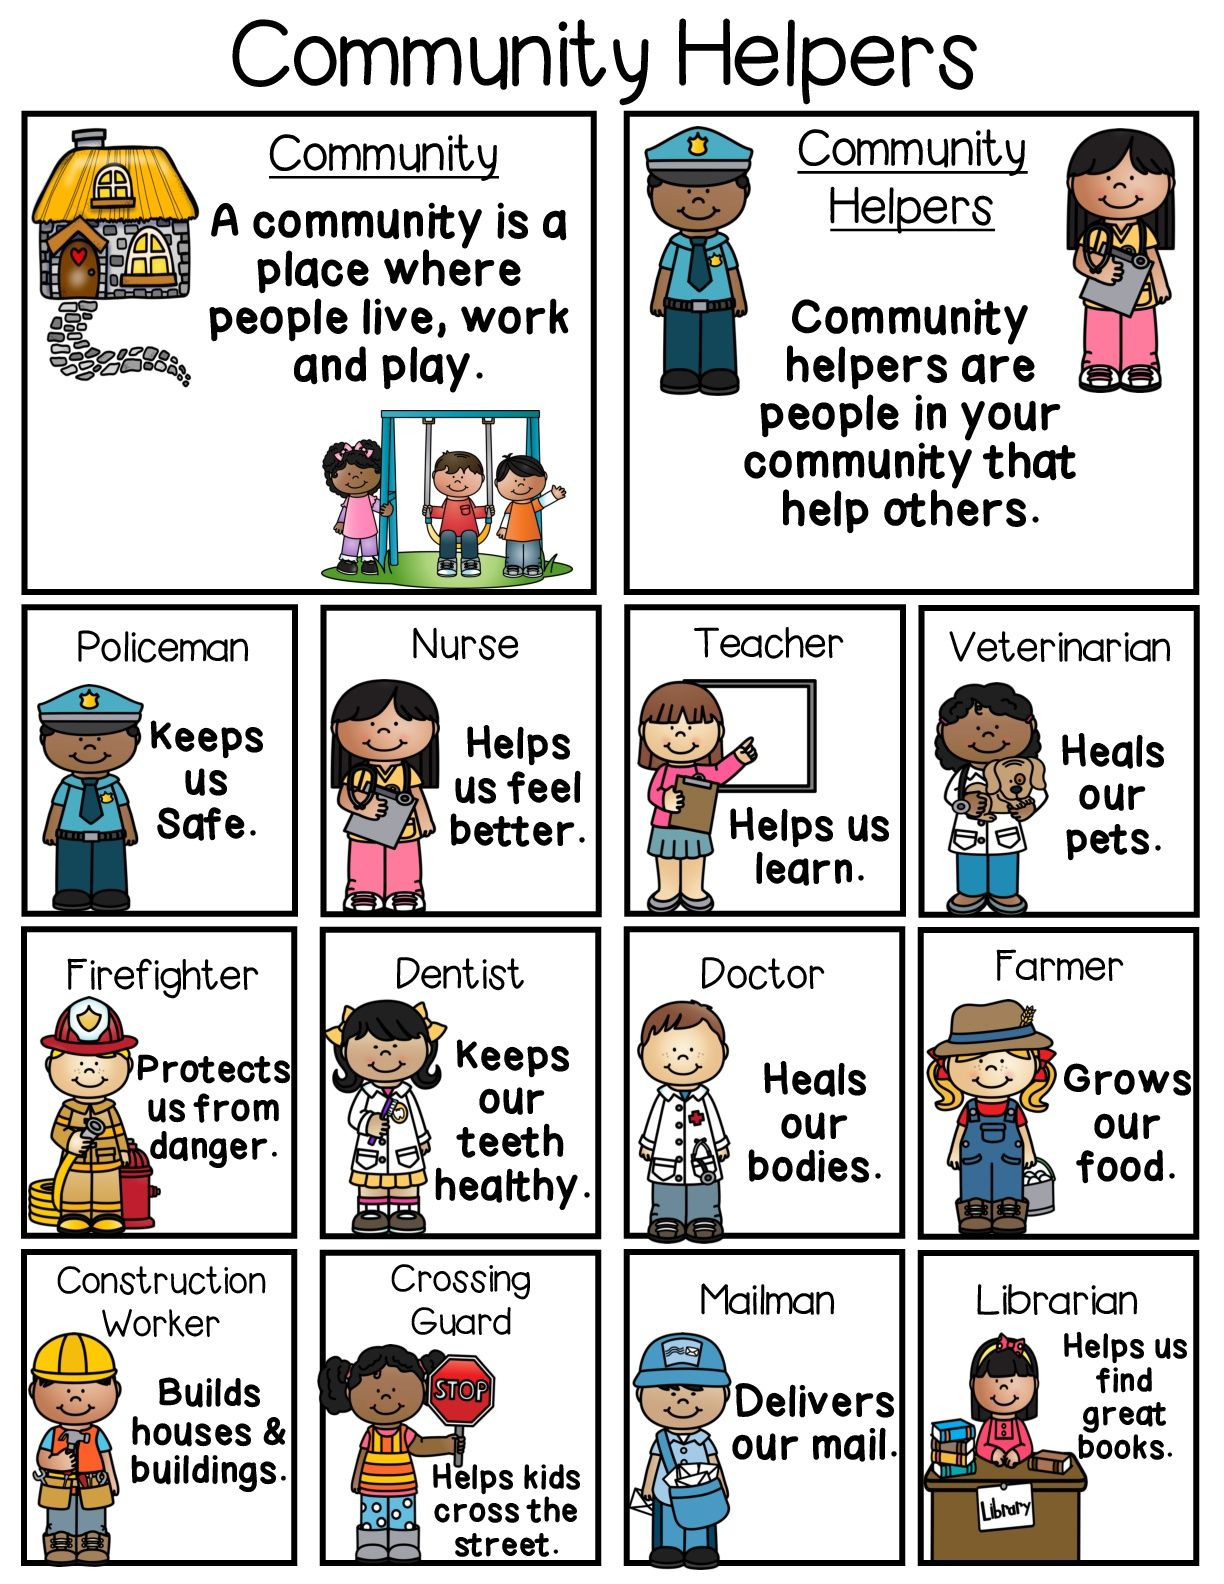 Fun and engaging community helpers poster. #esl #eslcommunityhelpers #communityhelpers